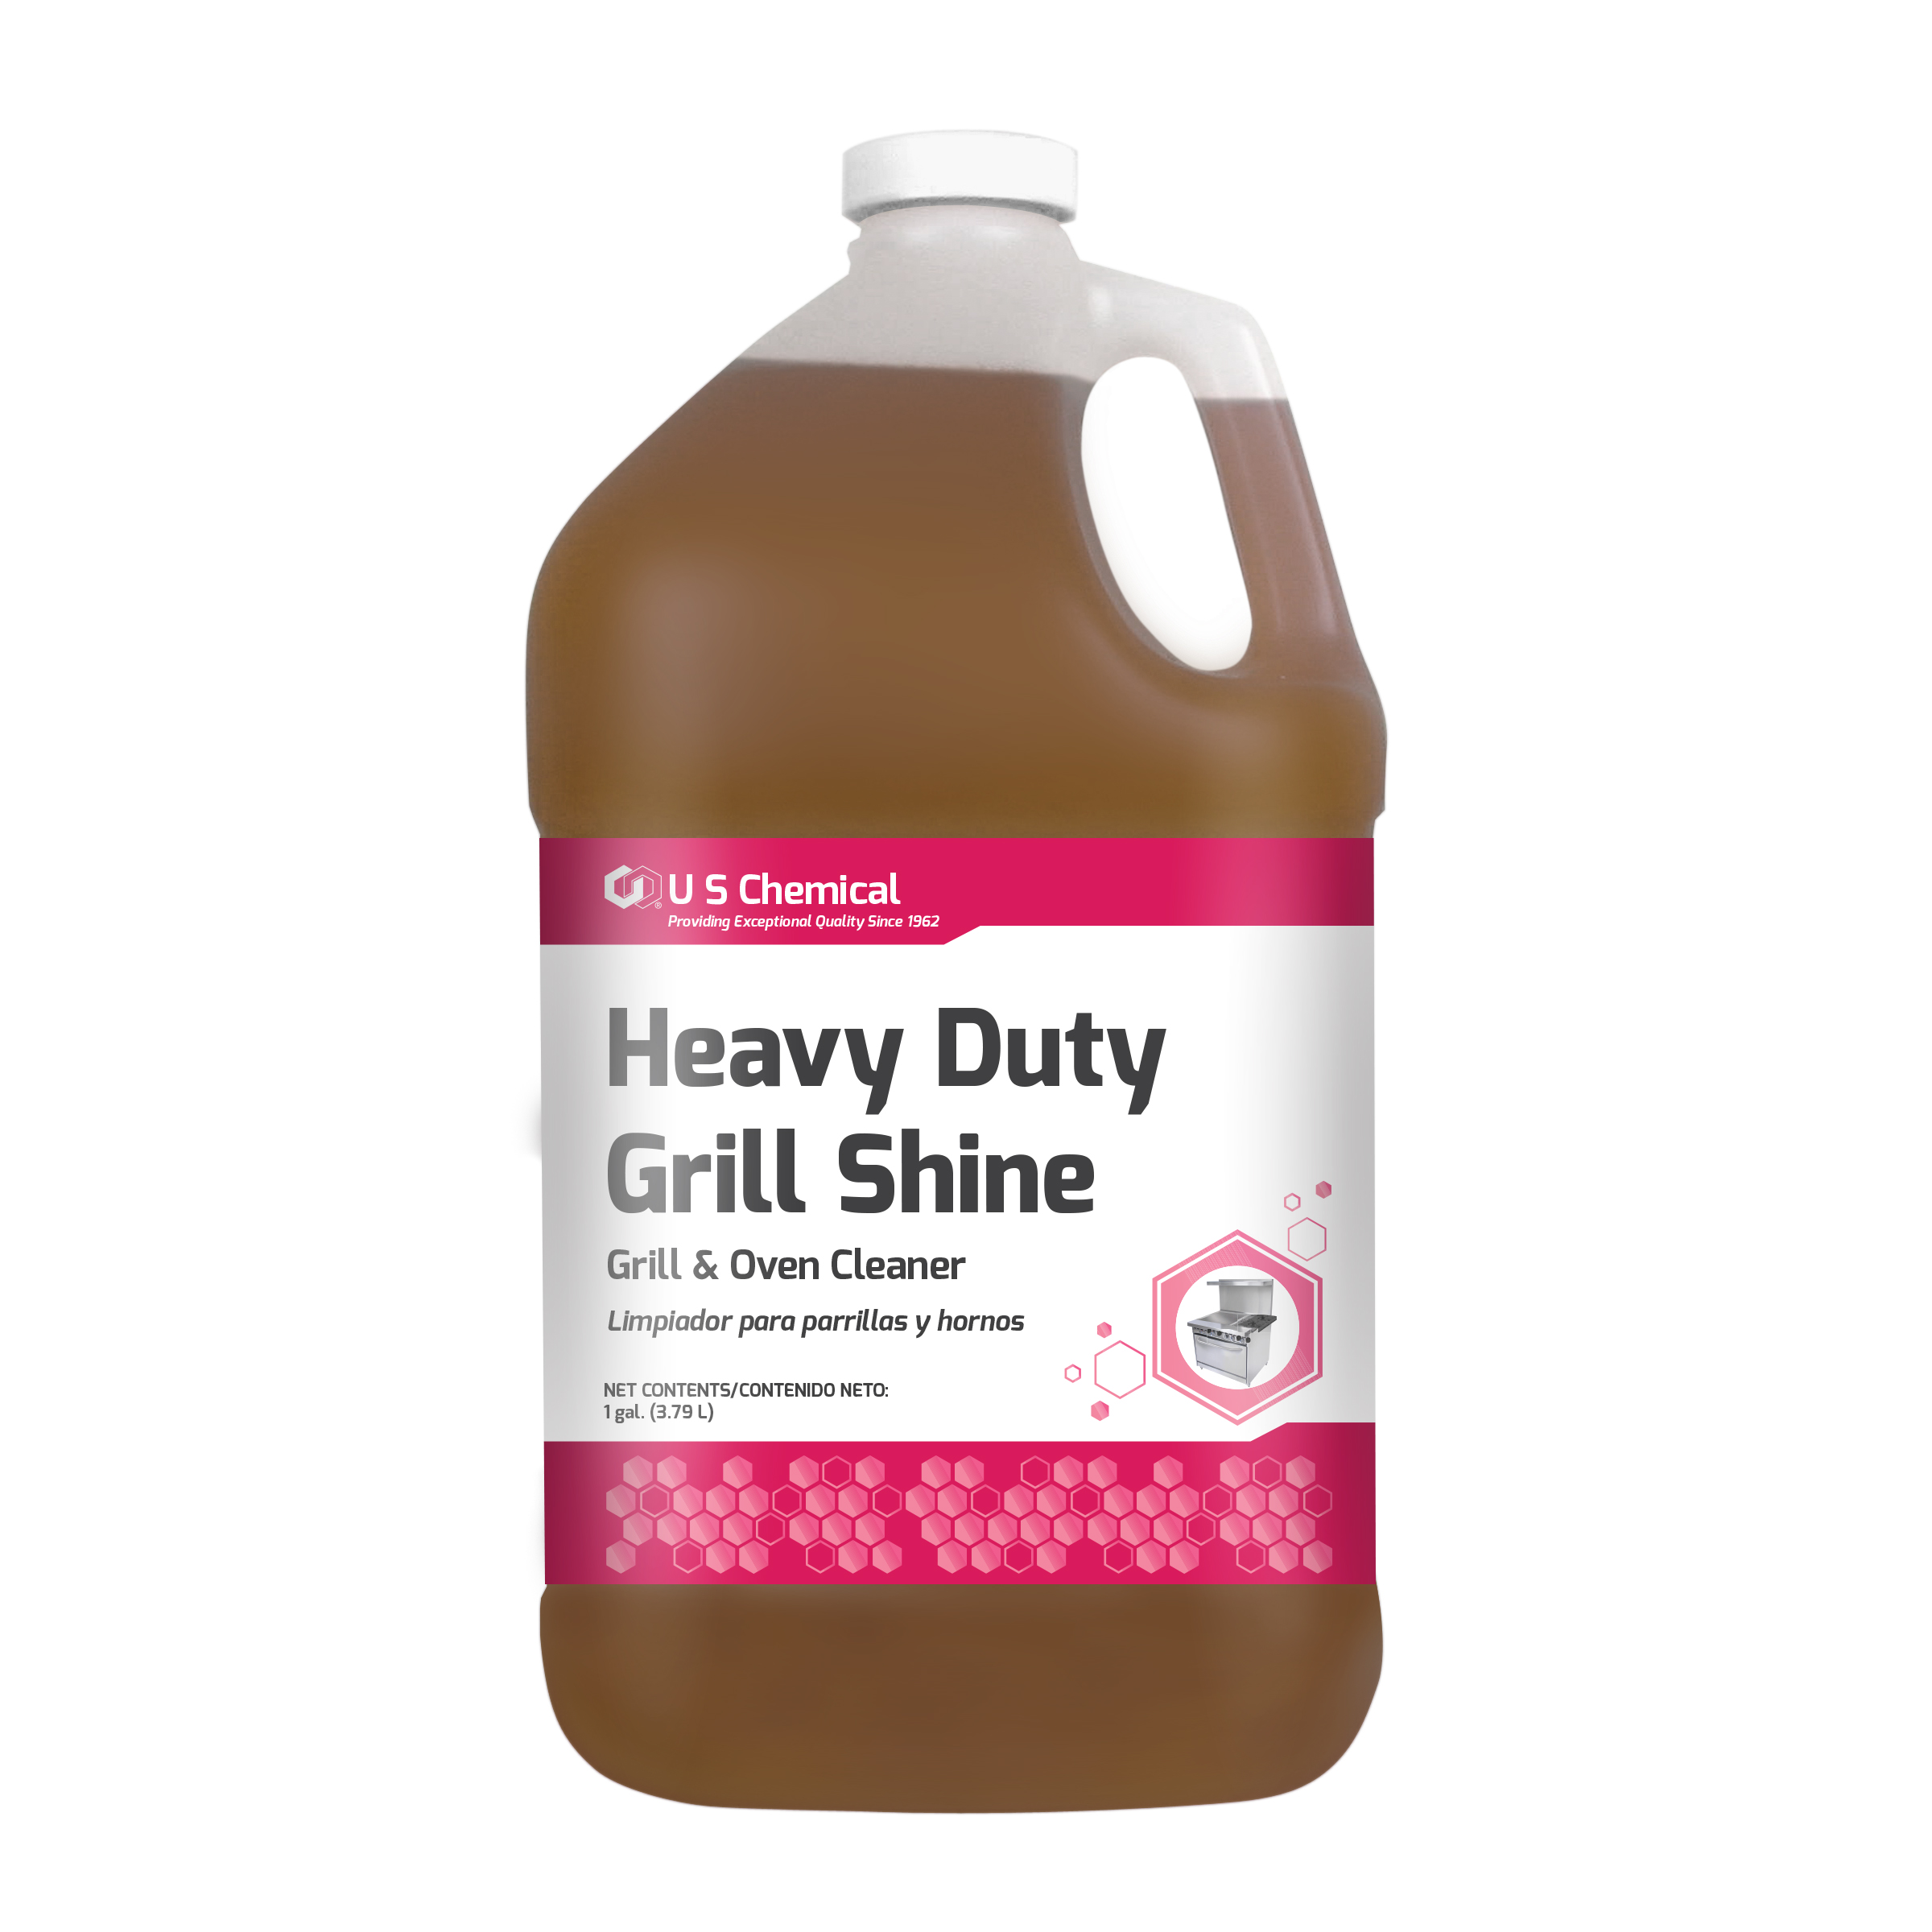 4435888_HEAVY_DUTY_GRILL_SHINE_1GA